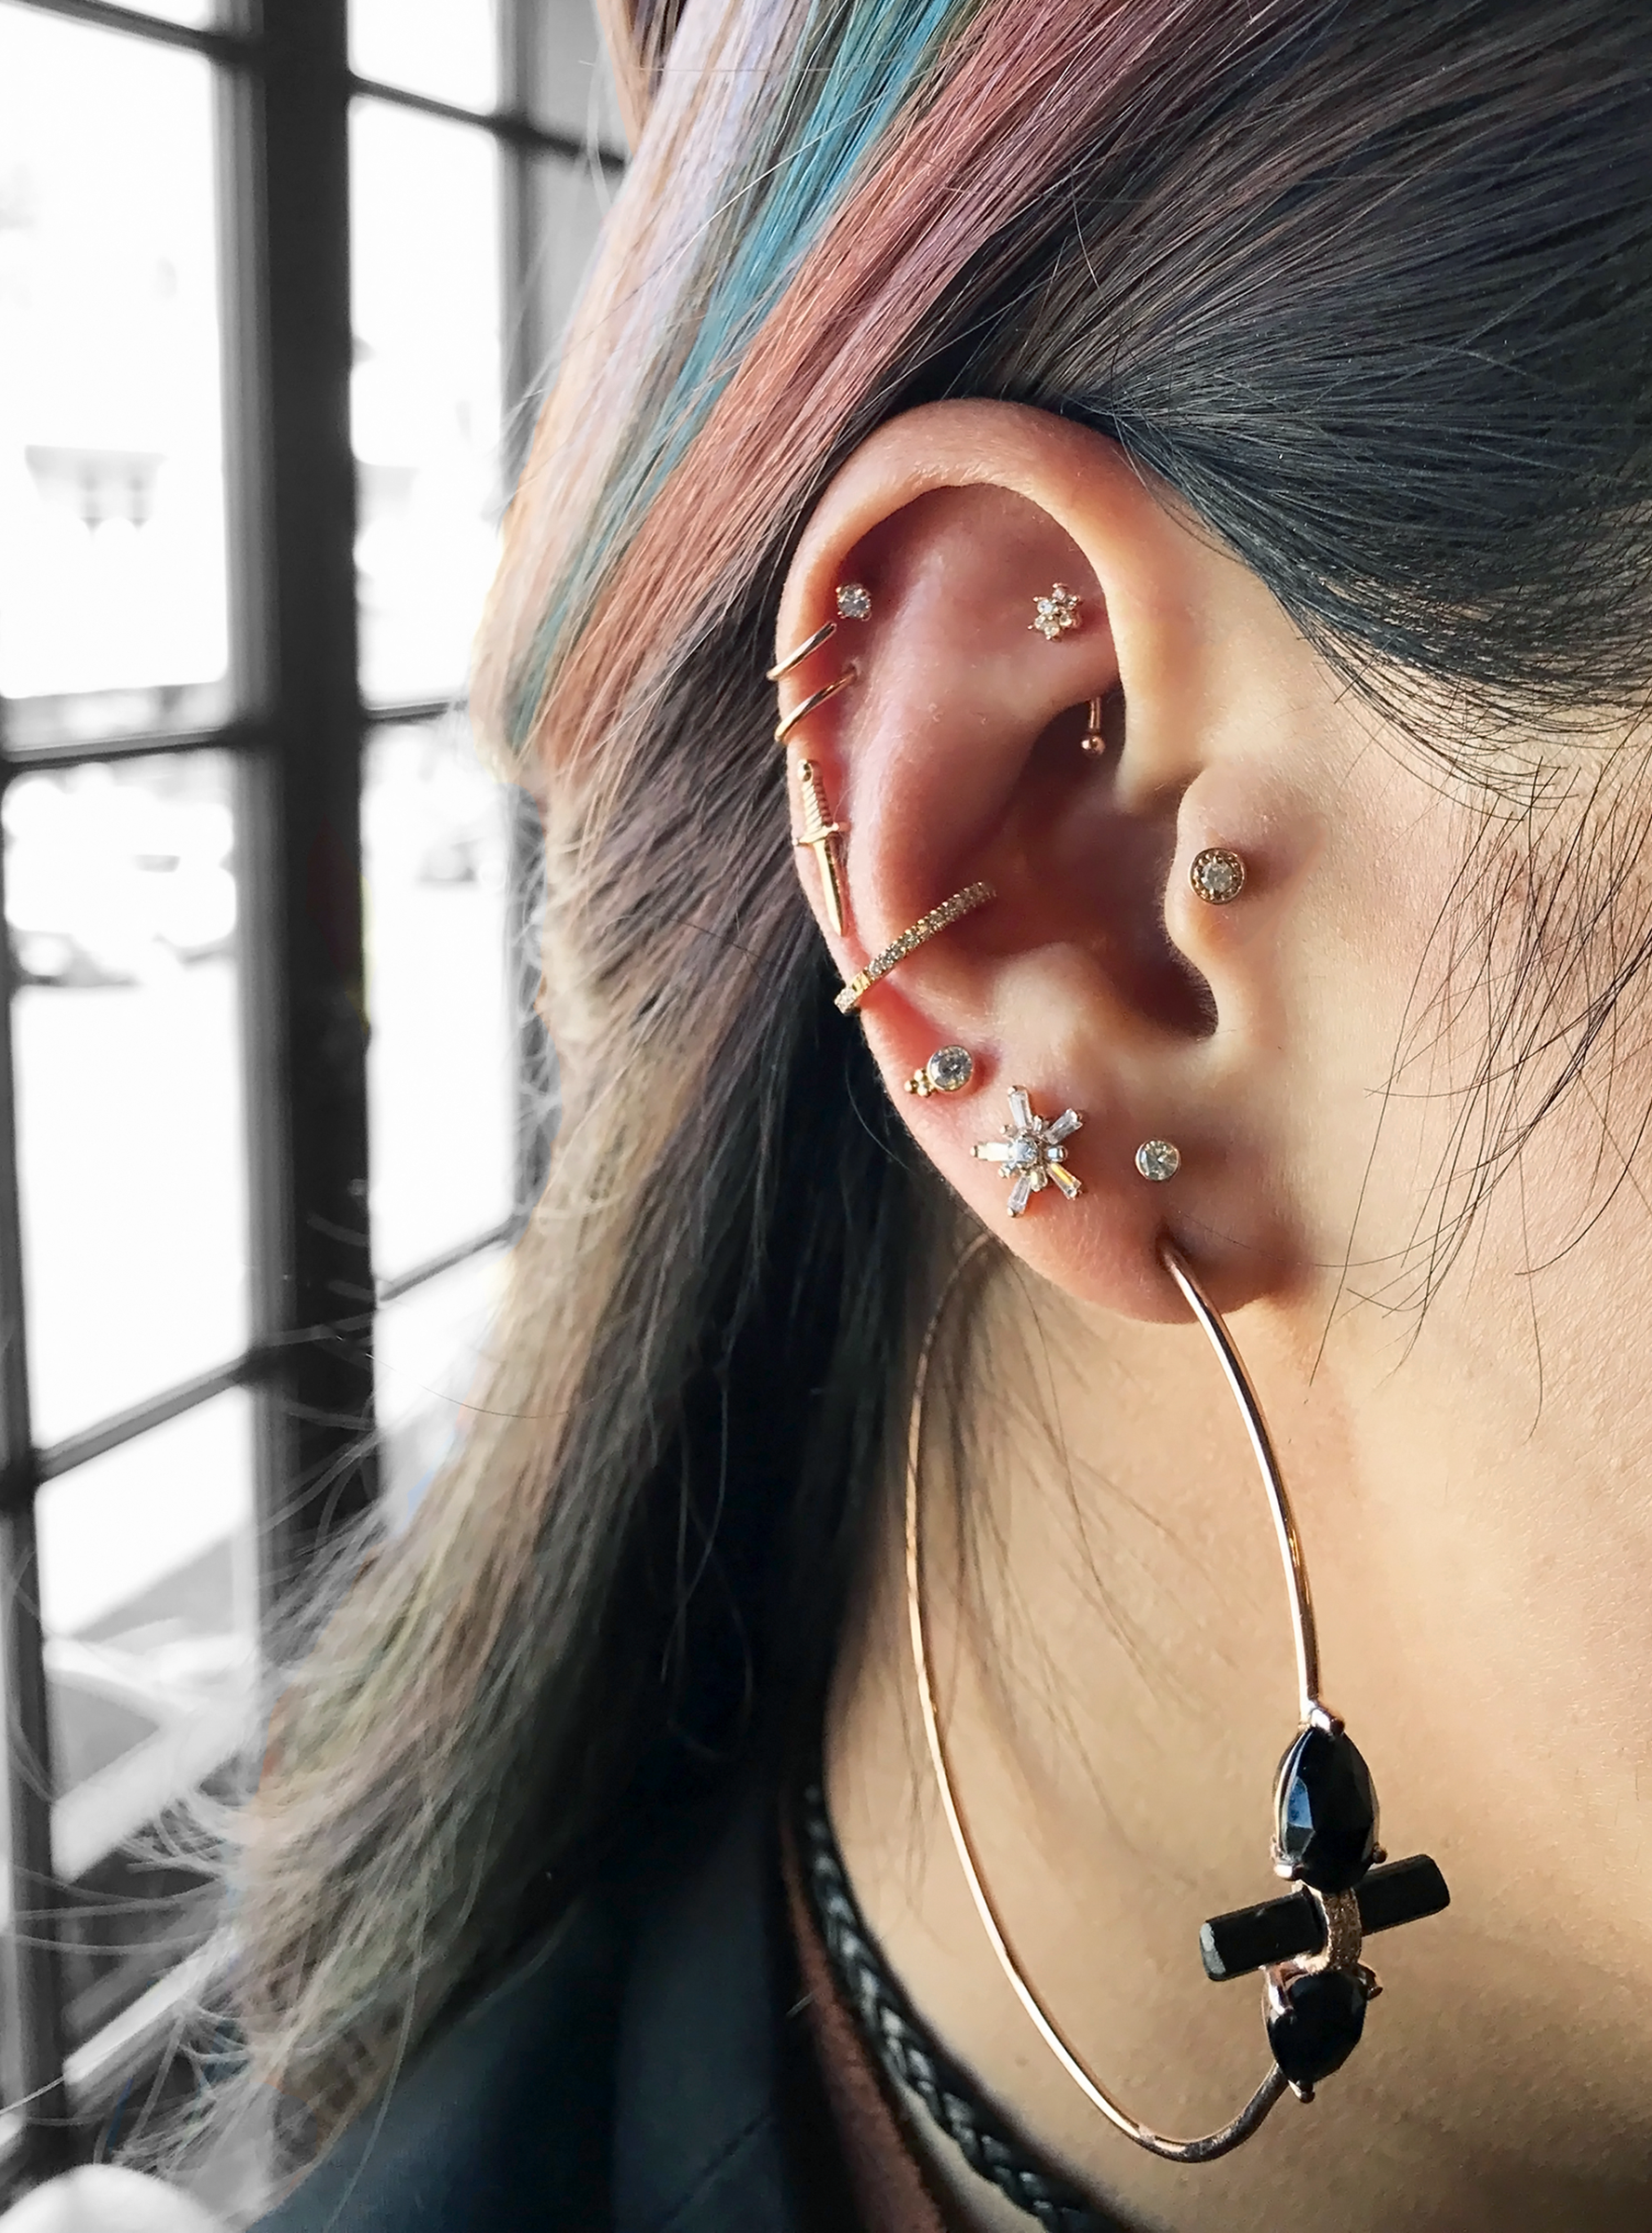 Piercing names body  The Raddest Multiple Ear Piercing Combinations To Copy Now